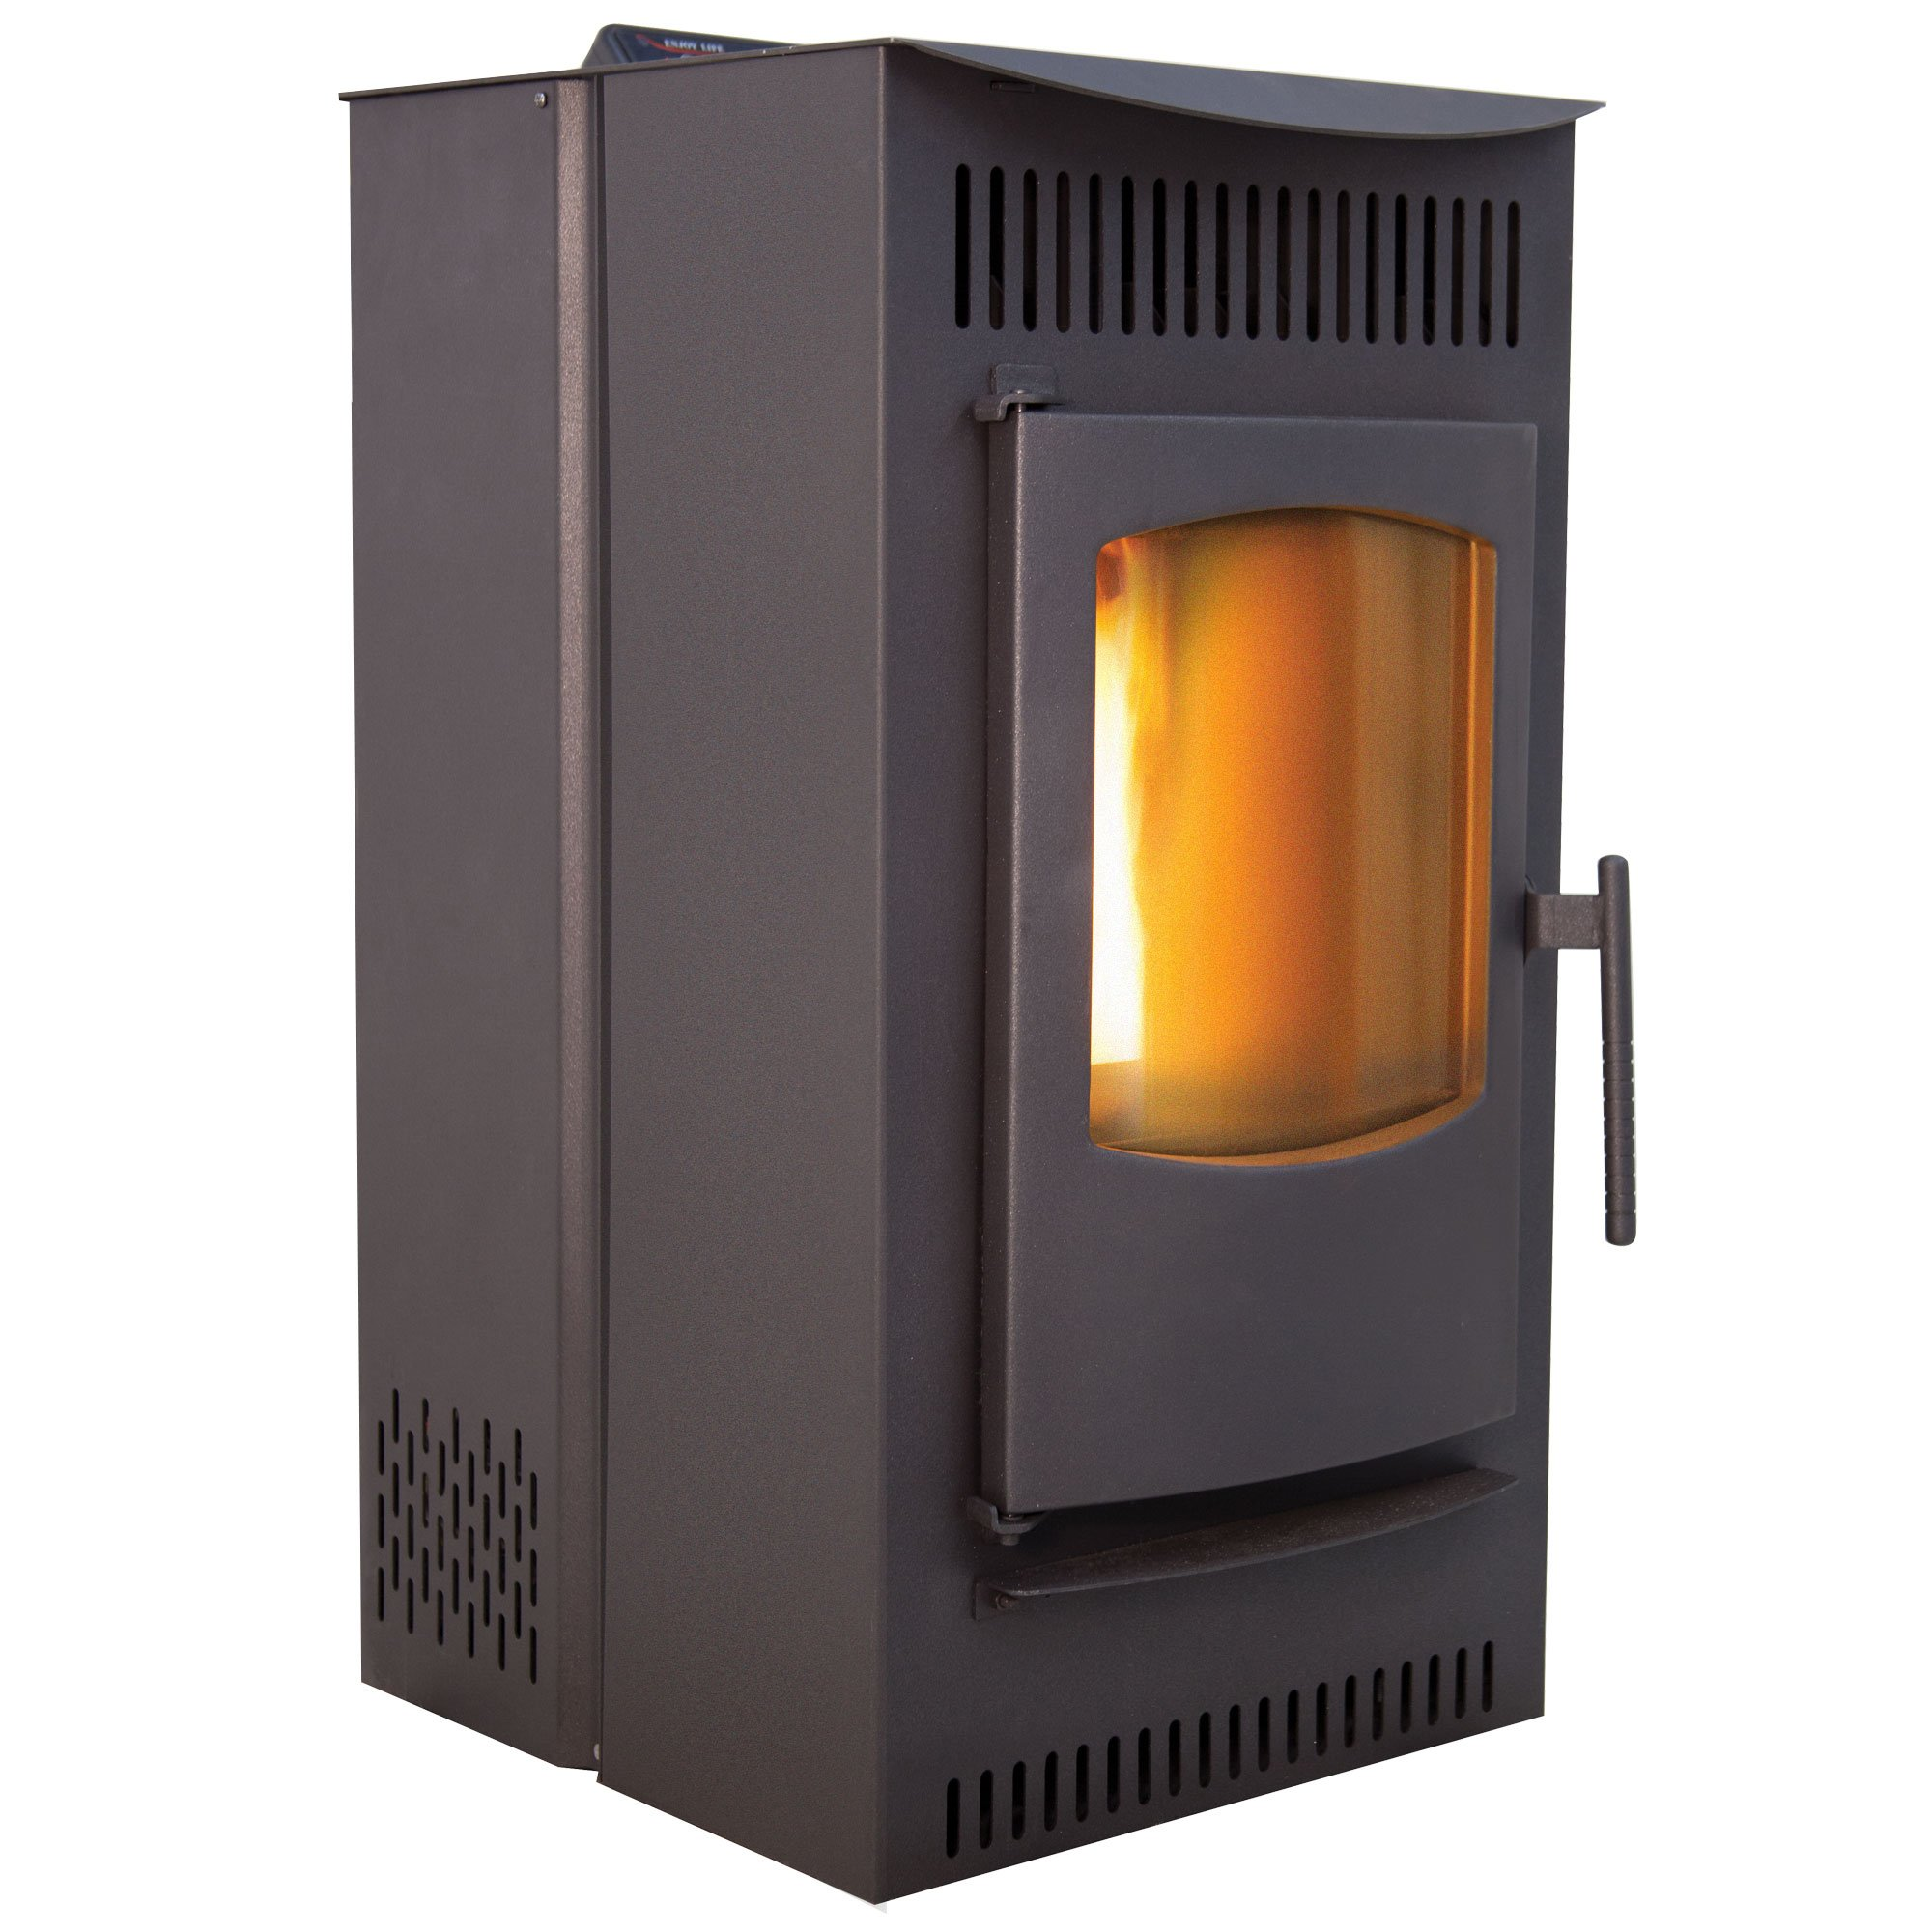 Best Rated In Pellet Stoves Amp Helpful Customer Reviews